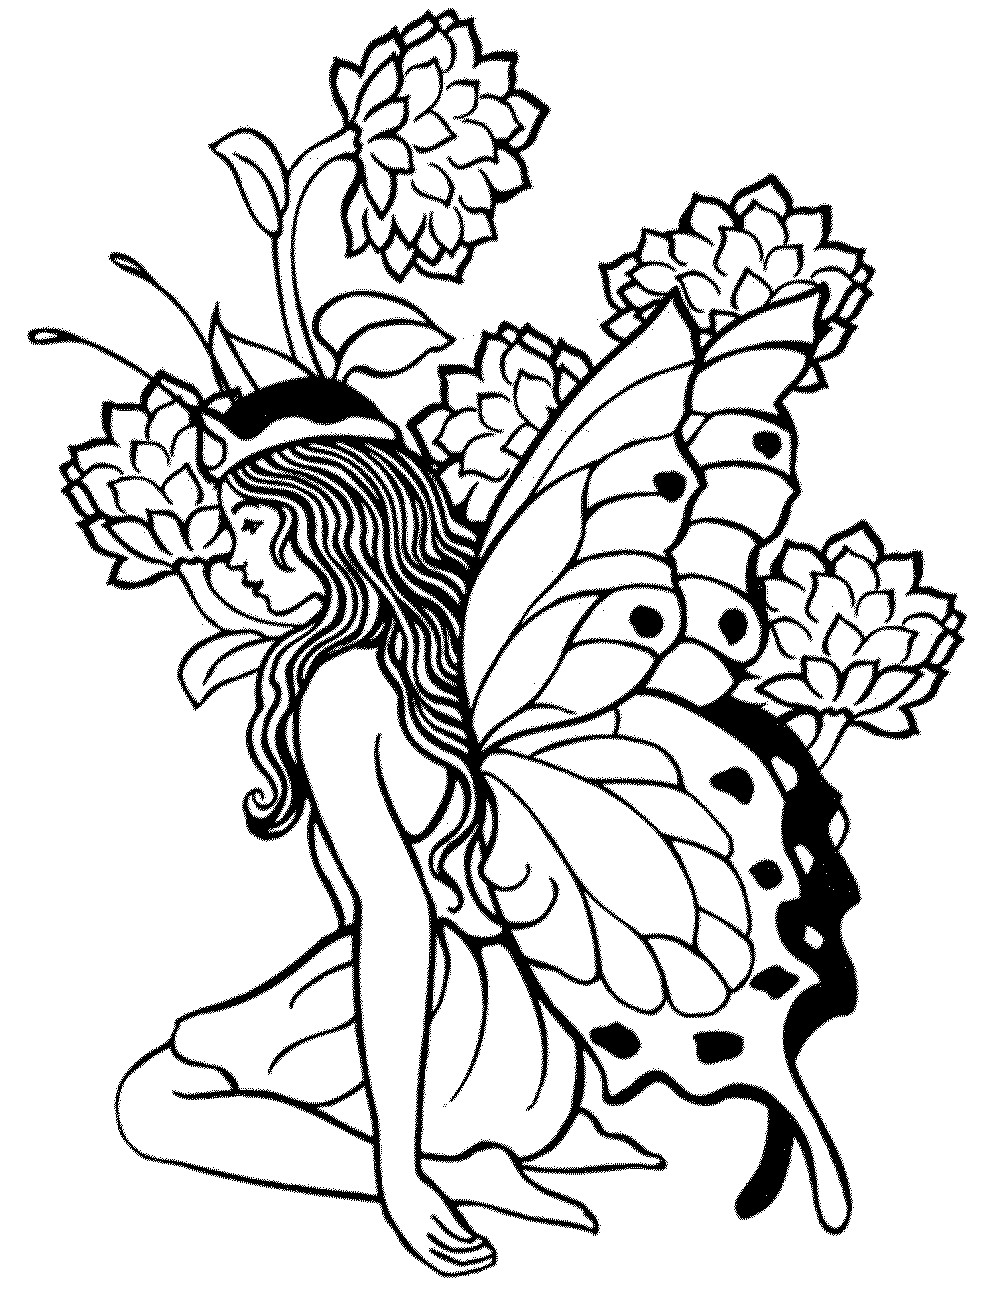 Free Coloring Pages For Adults Printable  Free Coloring Pages For Adults Printable Detailed Image 23